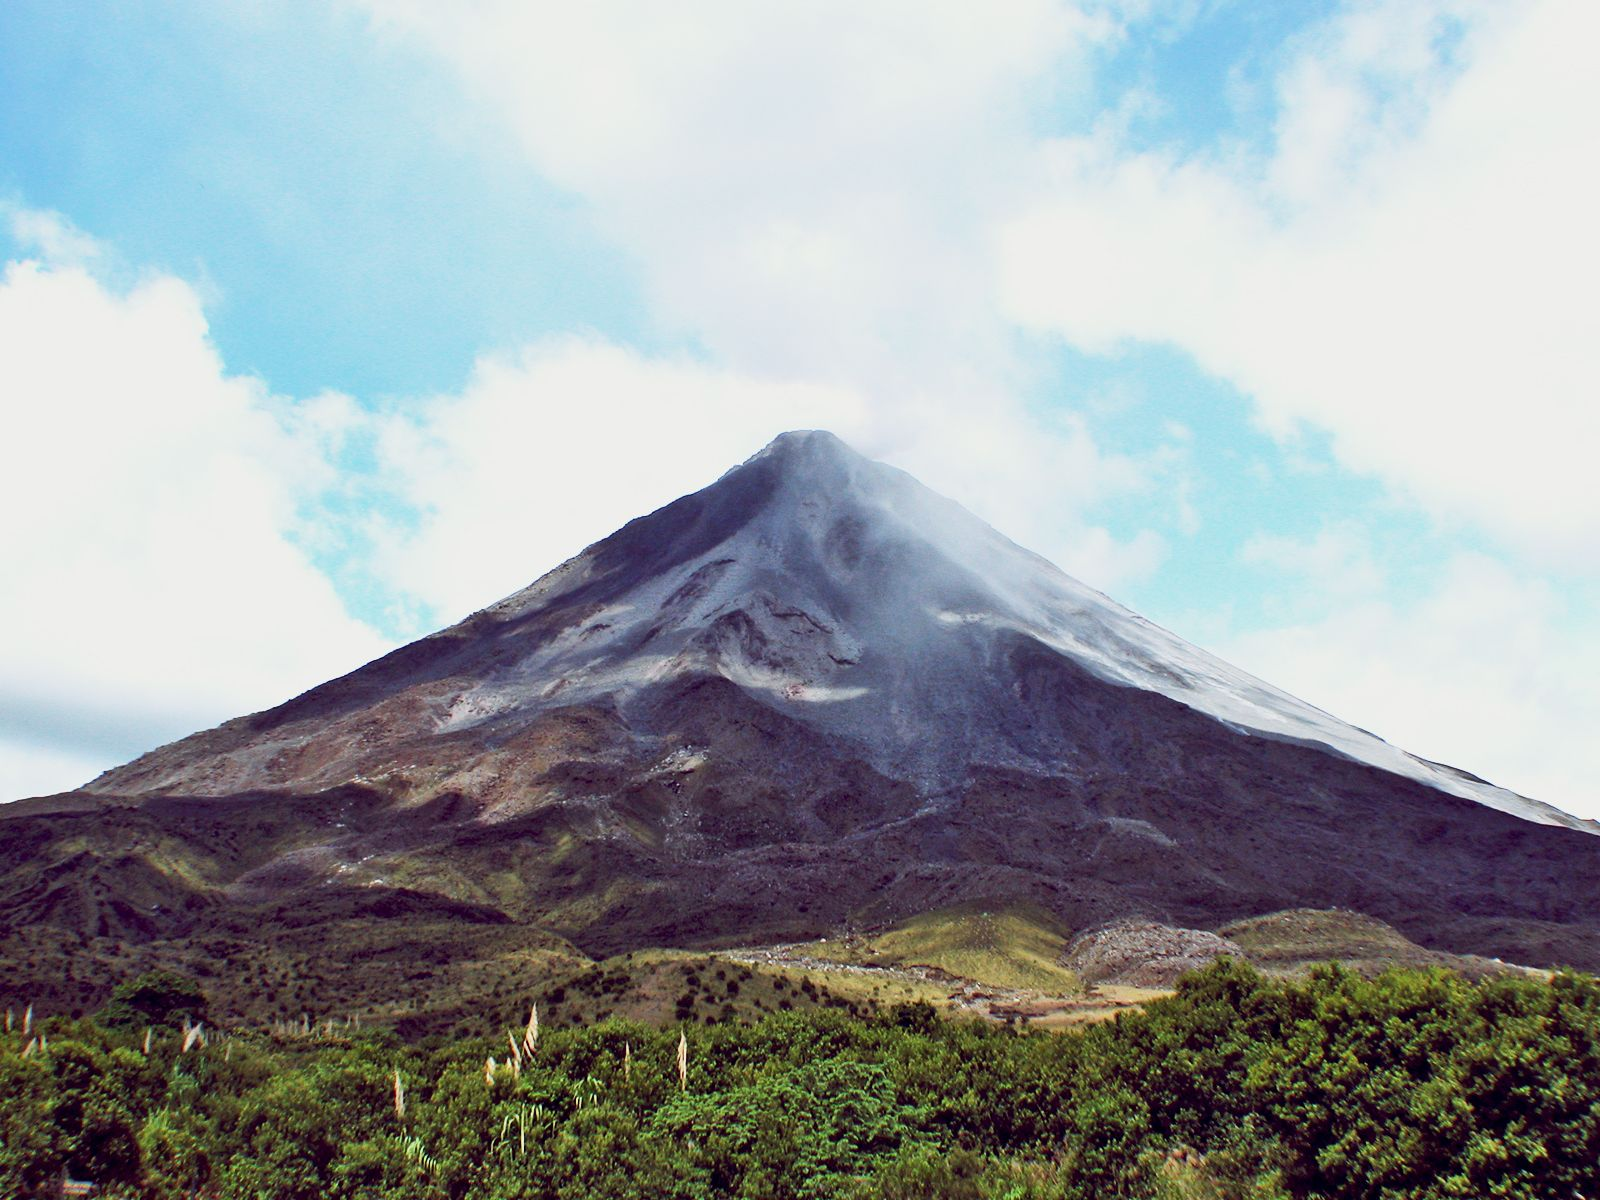 Did you know...? Arenal Volcano is one of the most active volcanoes in Costa Rica and in the world.